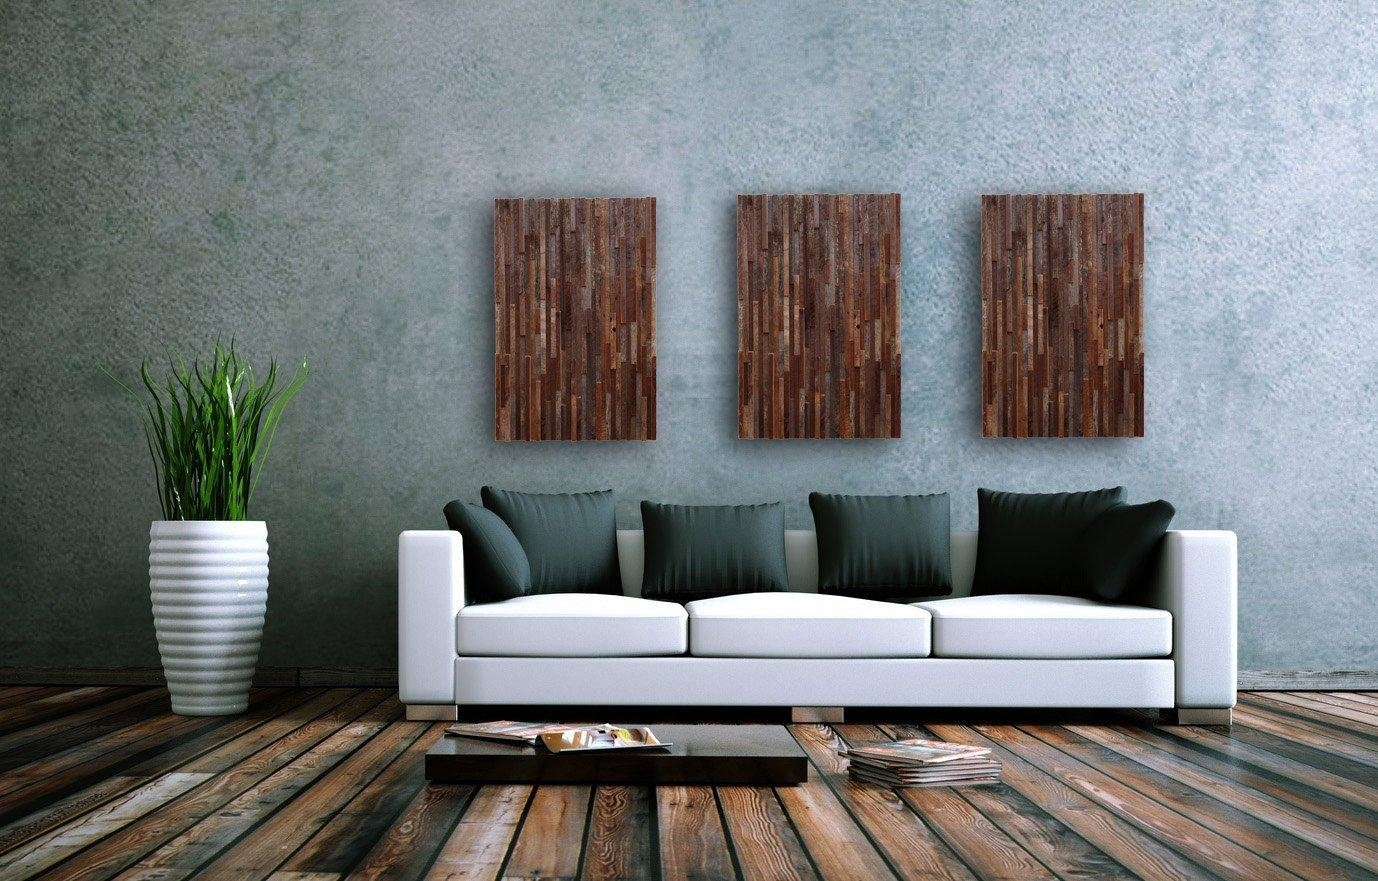 Outstanding Reclaimed Wood Wall Art – Style Motivation Within Wood Wall Art (Image 9 of 20)